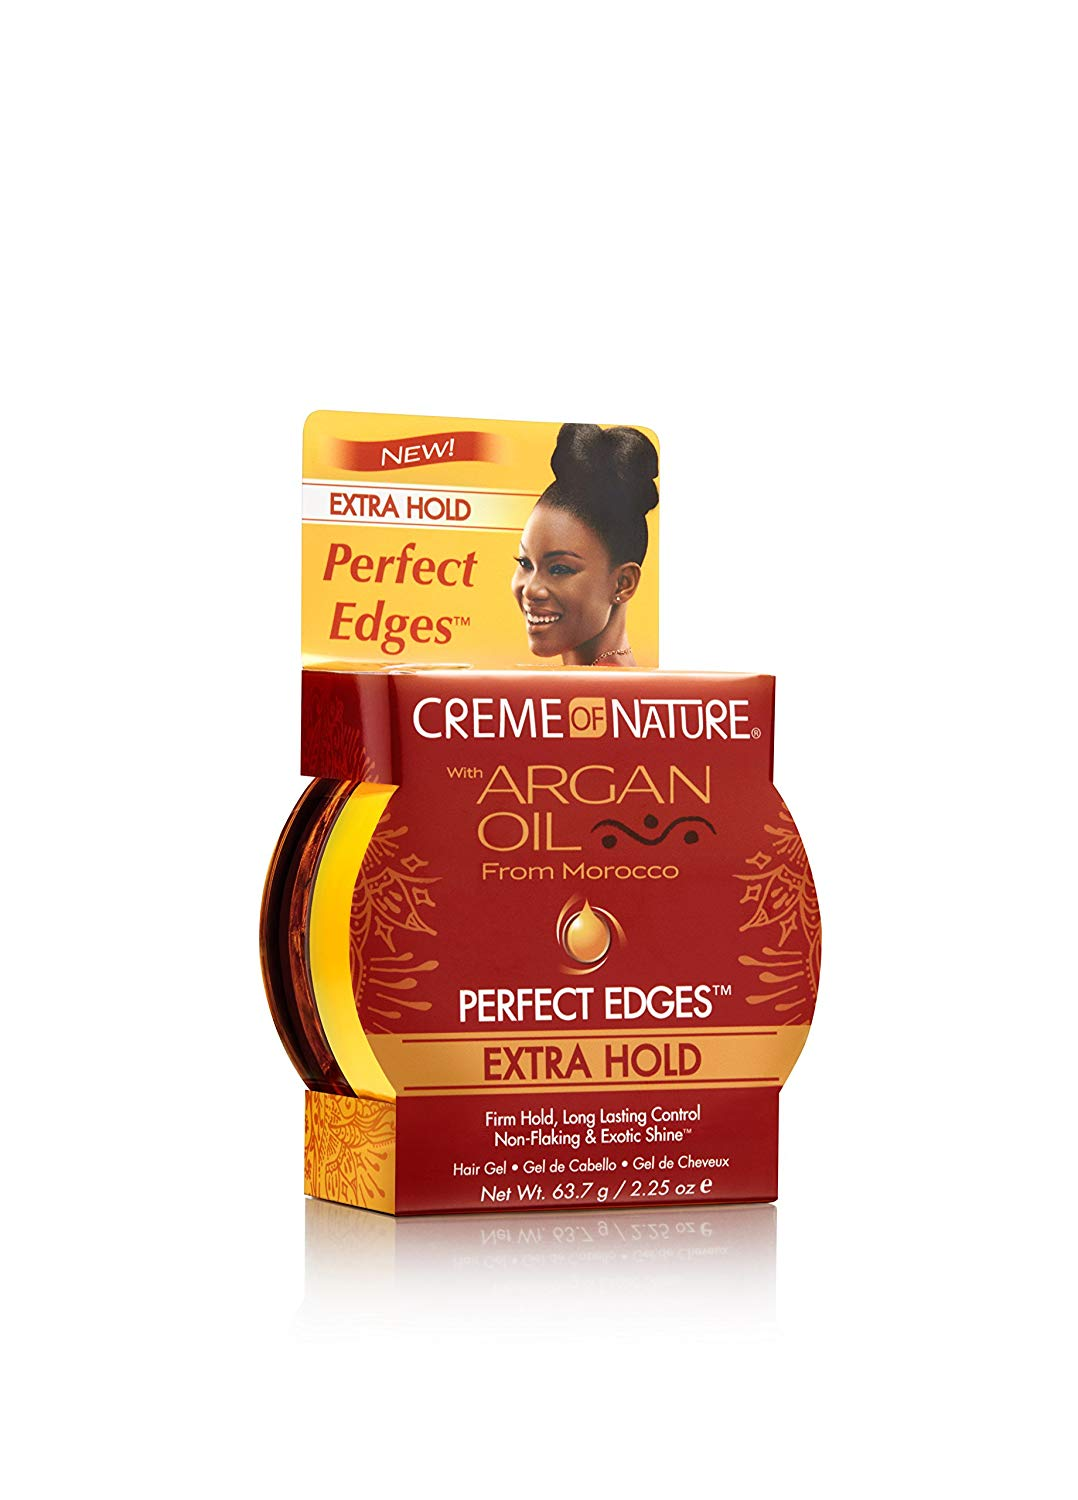 Creme Of Nature with Argan Oil Perfect Edges Extra Hold 2.25 oz